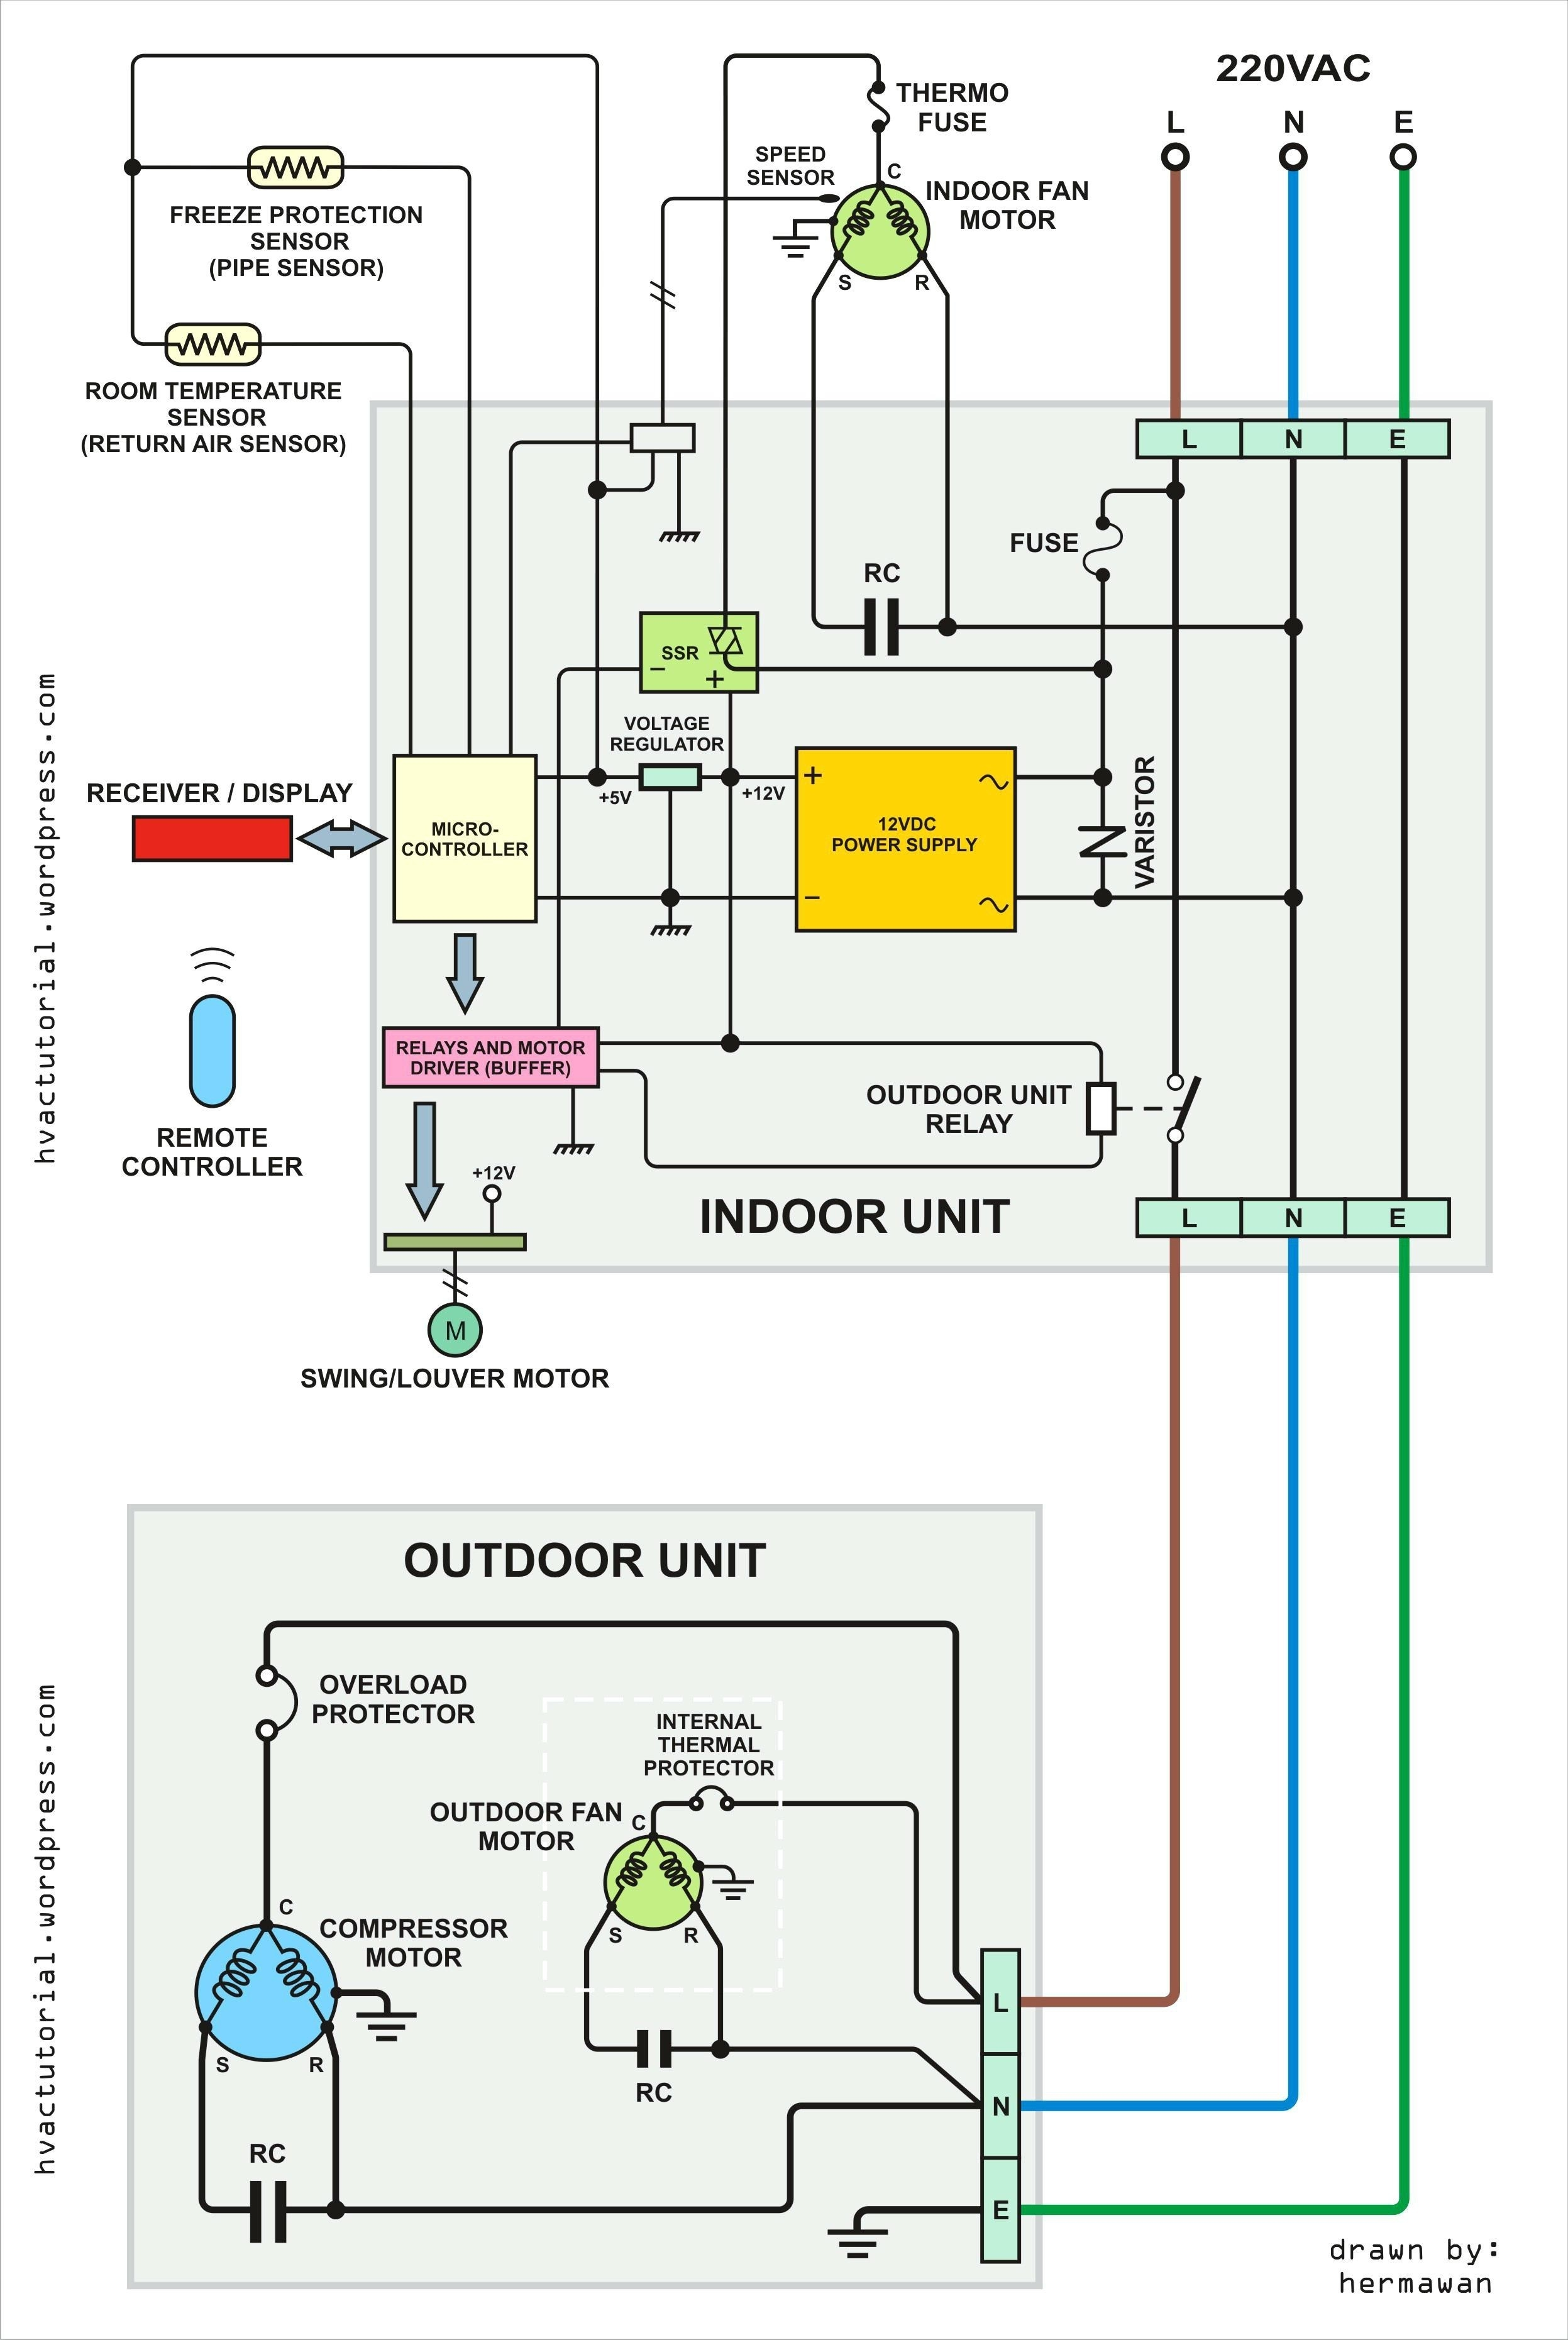 Wagner Motor Wiring Diagram - Wiring Diagram Img on triumph thunderbird 900 wiring diagram, kawasaki vulcan 500 wiring diagram, kawasaki vulcan chopper, kawasaki vulcan ignition wiring diagram, h4 halogen headlight wiring diagram, honda shadow aero wiring diagram, dpdt switch wiring diagram, kawasaki vulcan classic, kawasaki vulcan 800 wiring diagram, kawasaki vulcan motorcycles, kawasaki vulcan accessories, kawasaki vulcan 2000 wiring diagram, kawasaki vulcan cruiser, knob and tube wiring diagram, ibanez pickup wiring diagram, kawasaki vulcan 1500 wiring diagram, kawasaki vulcan handlebars, kawasaki vulcan 750 wiring diagram, yamaha v star 650 wiring diagram, water temperature gauge wiring diagram,